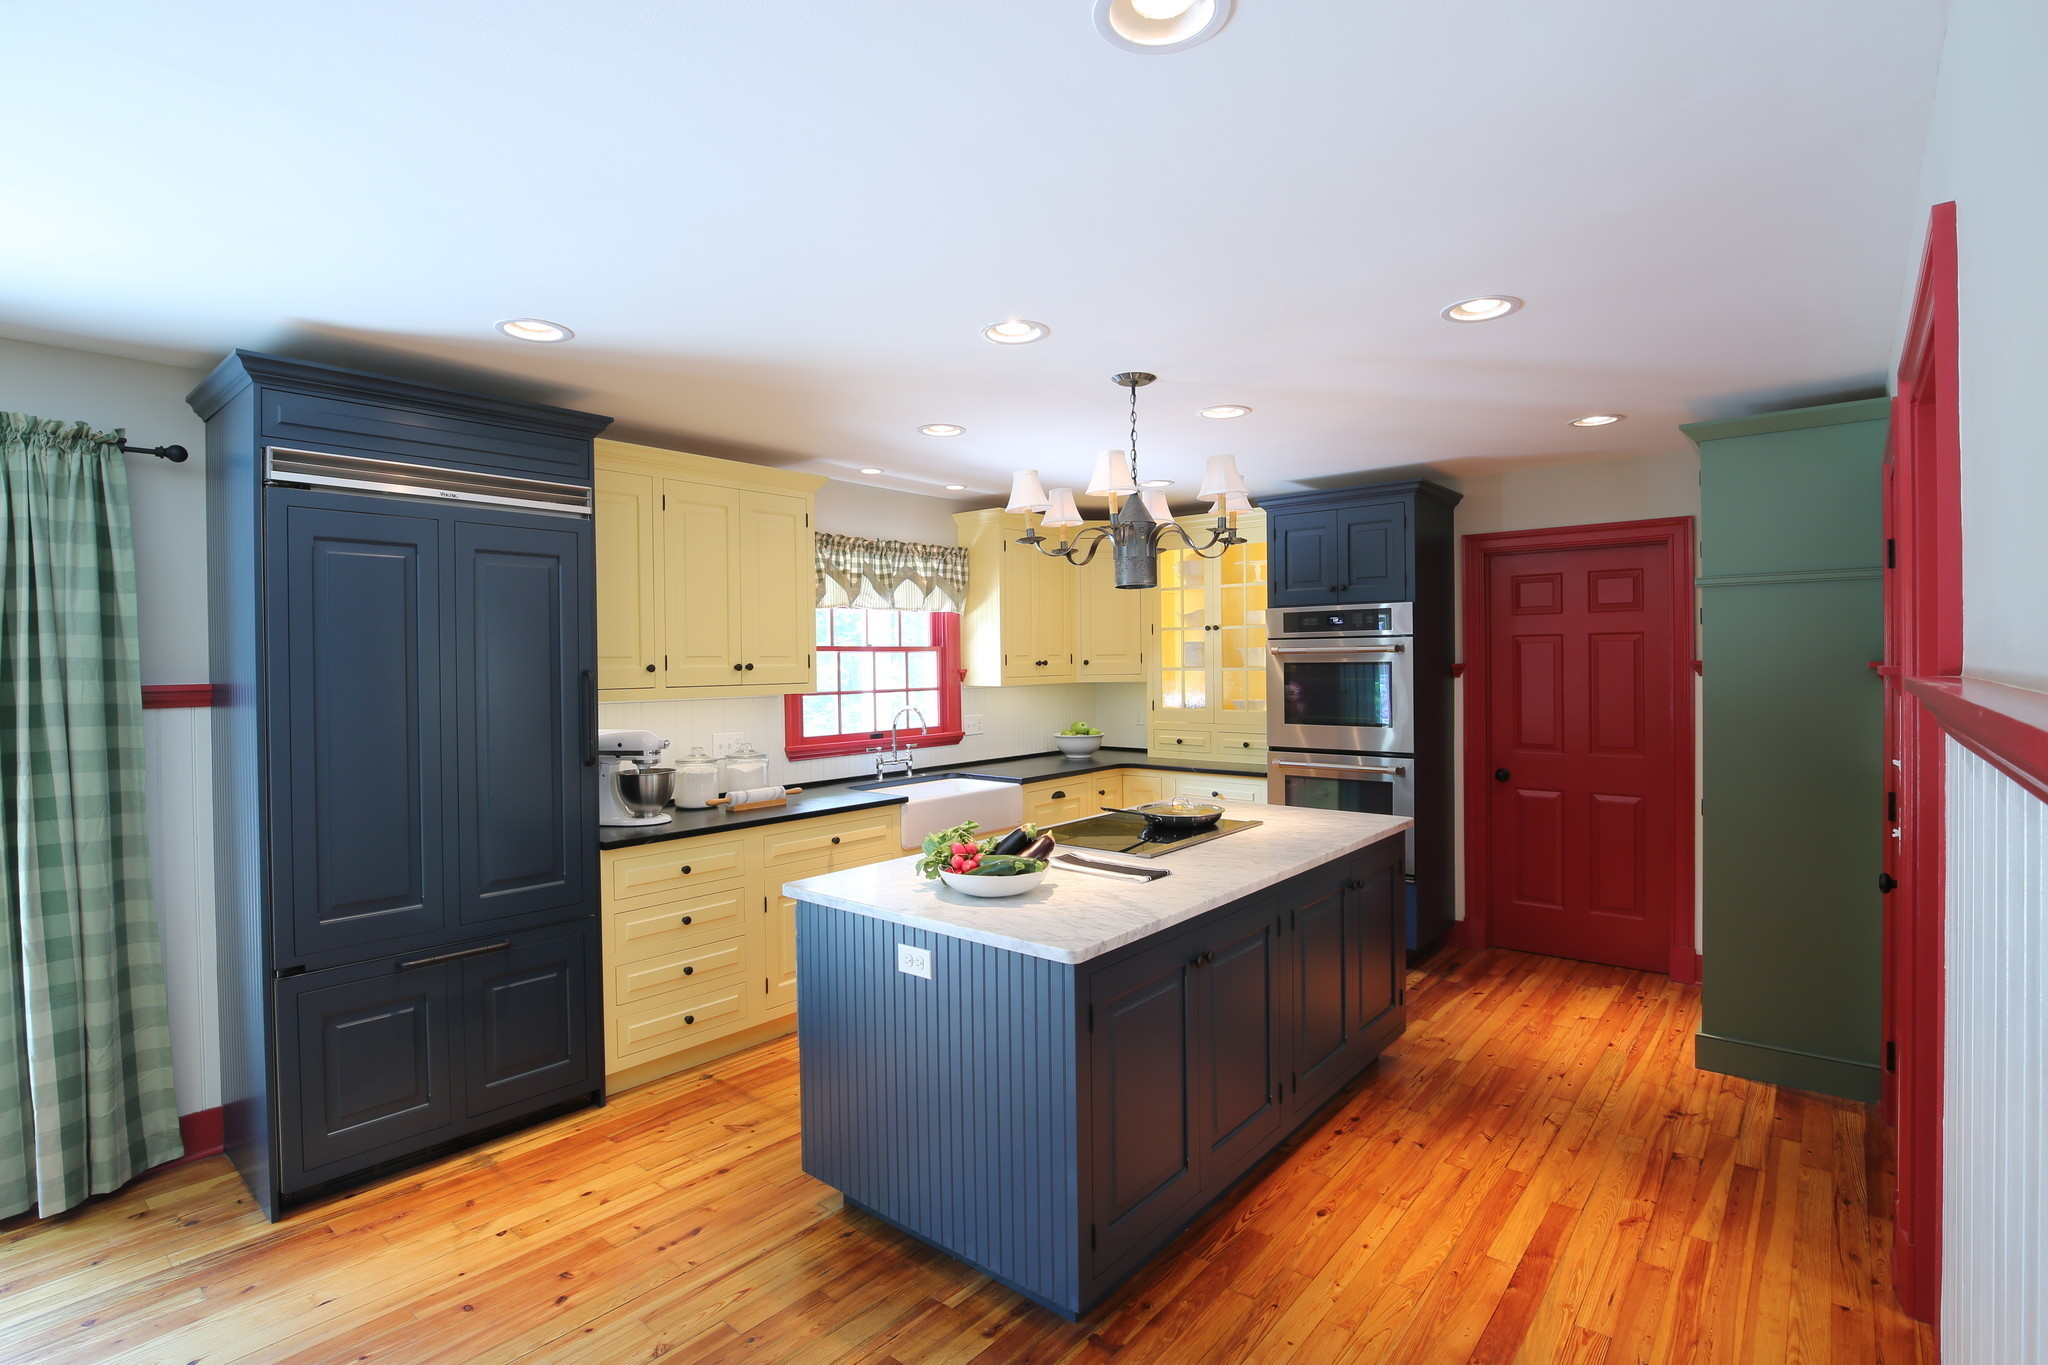 Kitchens With Character: Days Of All-white Cabinets